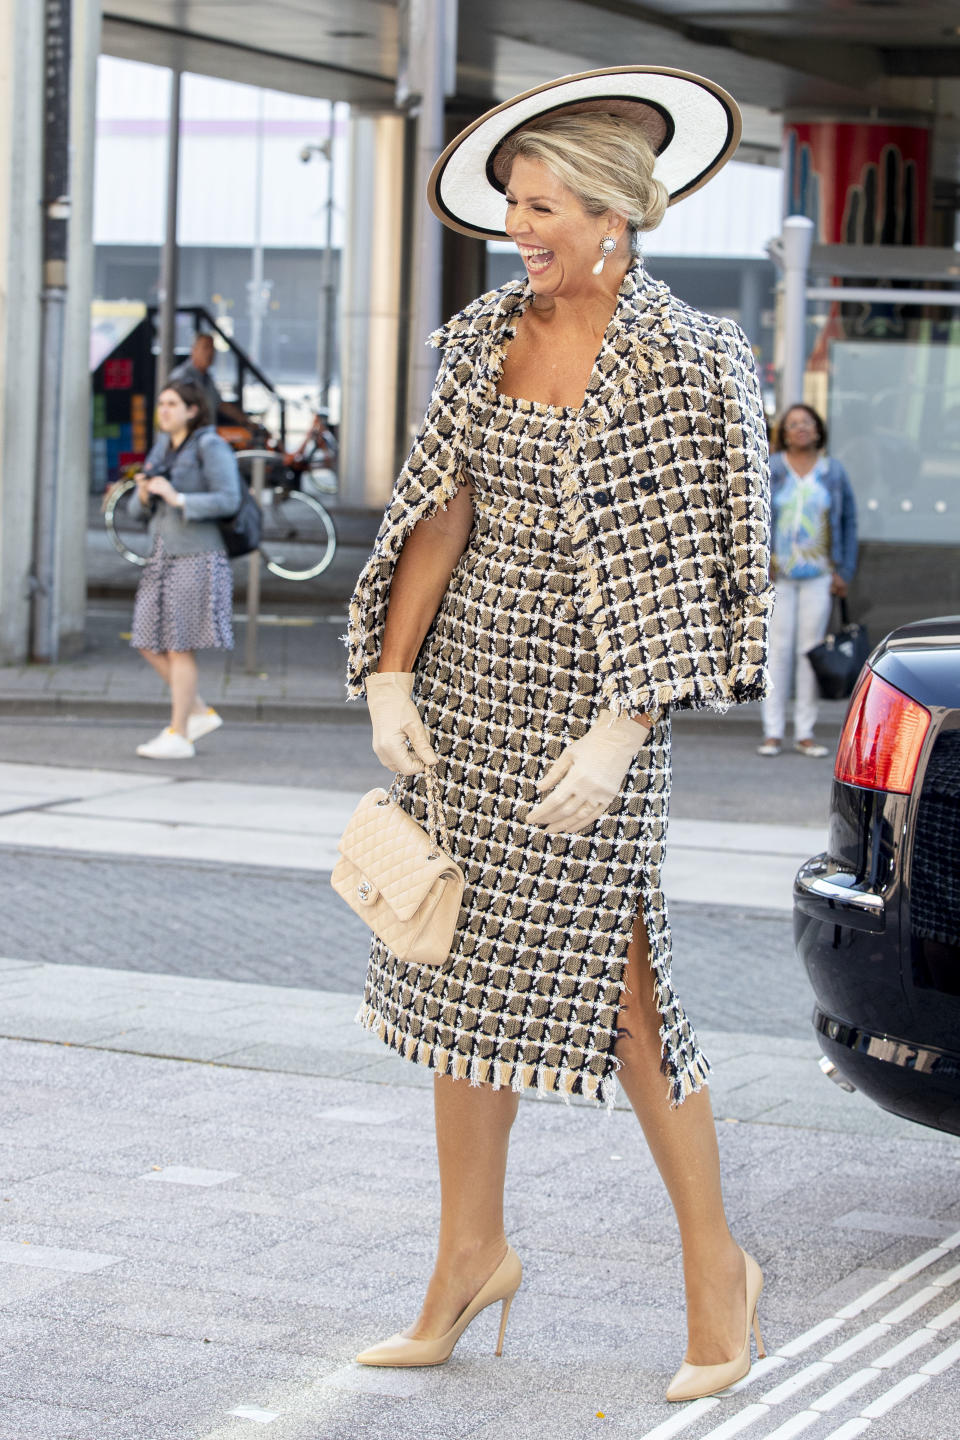 ROTTERDAM, NETHERLANDS - SEPTEMBER 16: Queen Maxima of The Netherlands attends the opening of Theater Zuidplein on September 16, 2020 in Rotterdam, Netherlands. (Photo by Patrick van Katwijk/Getty Images)